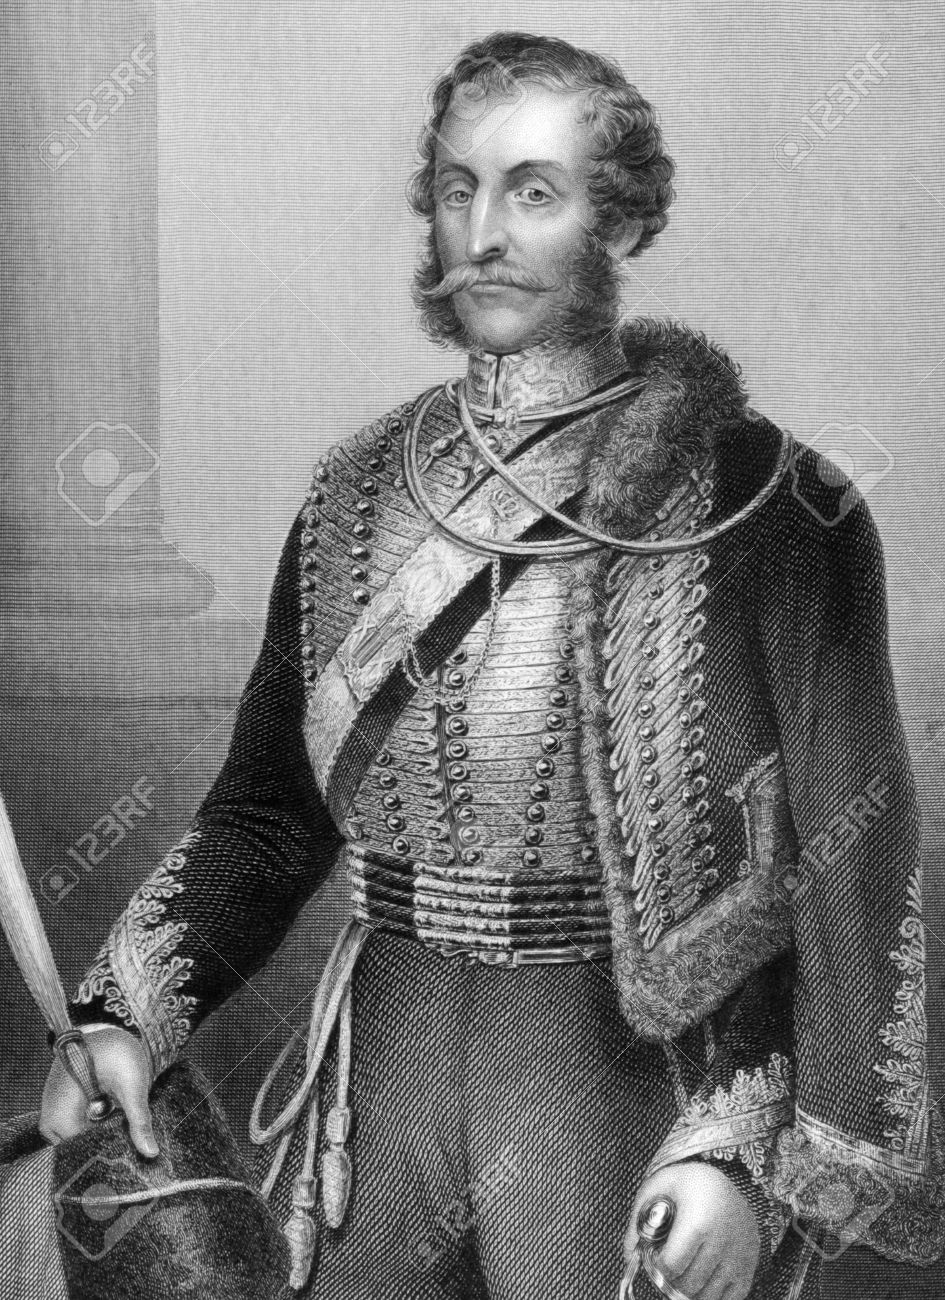 James Brudenell, the seventh Earl of Cardigan